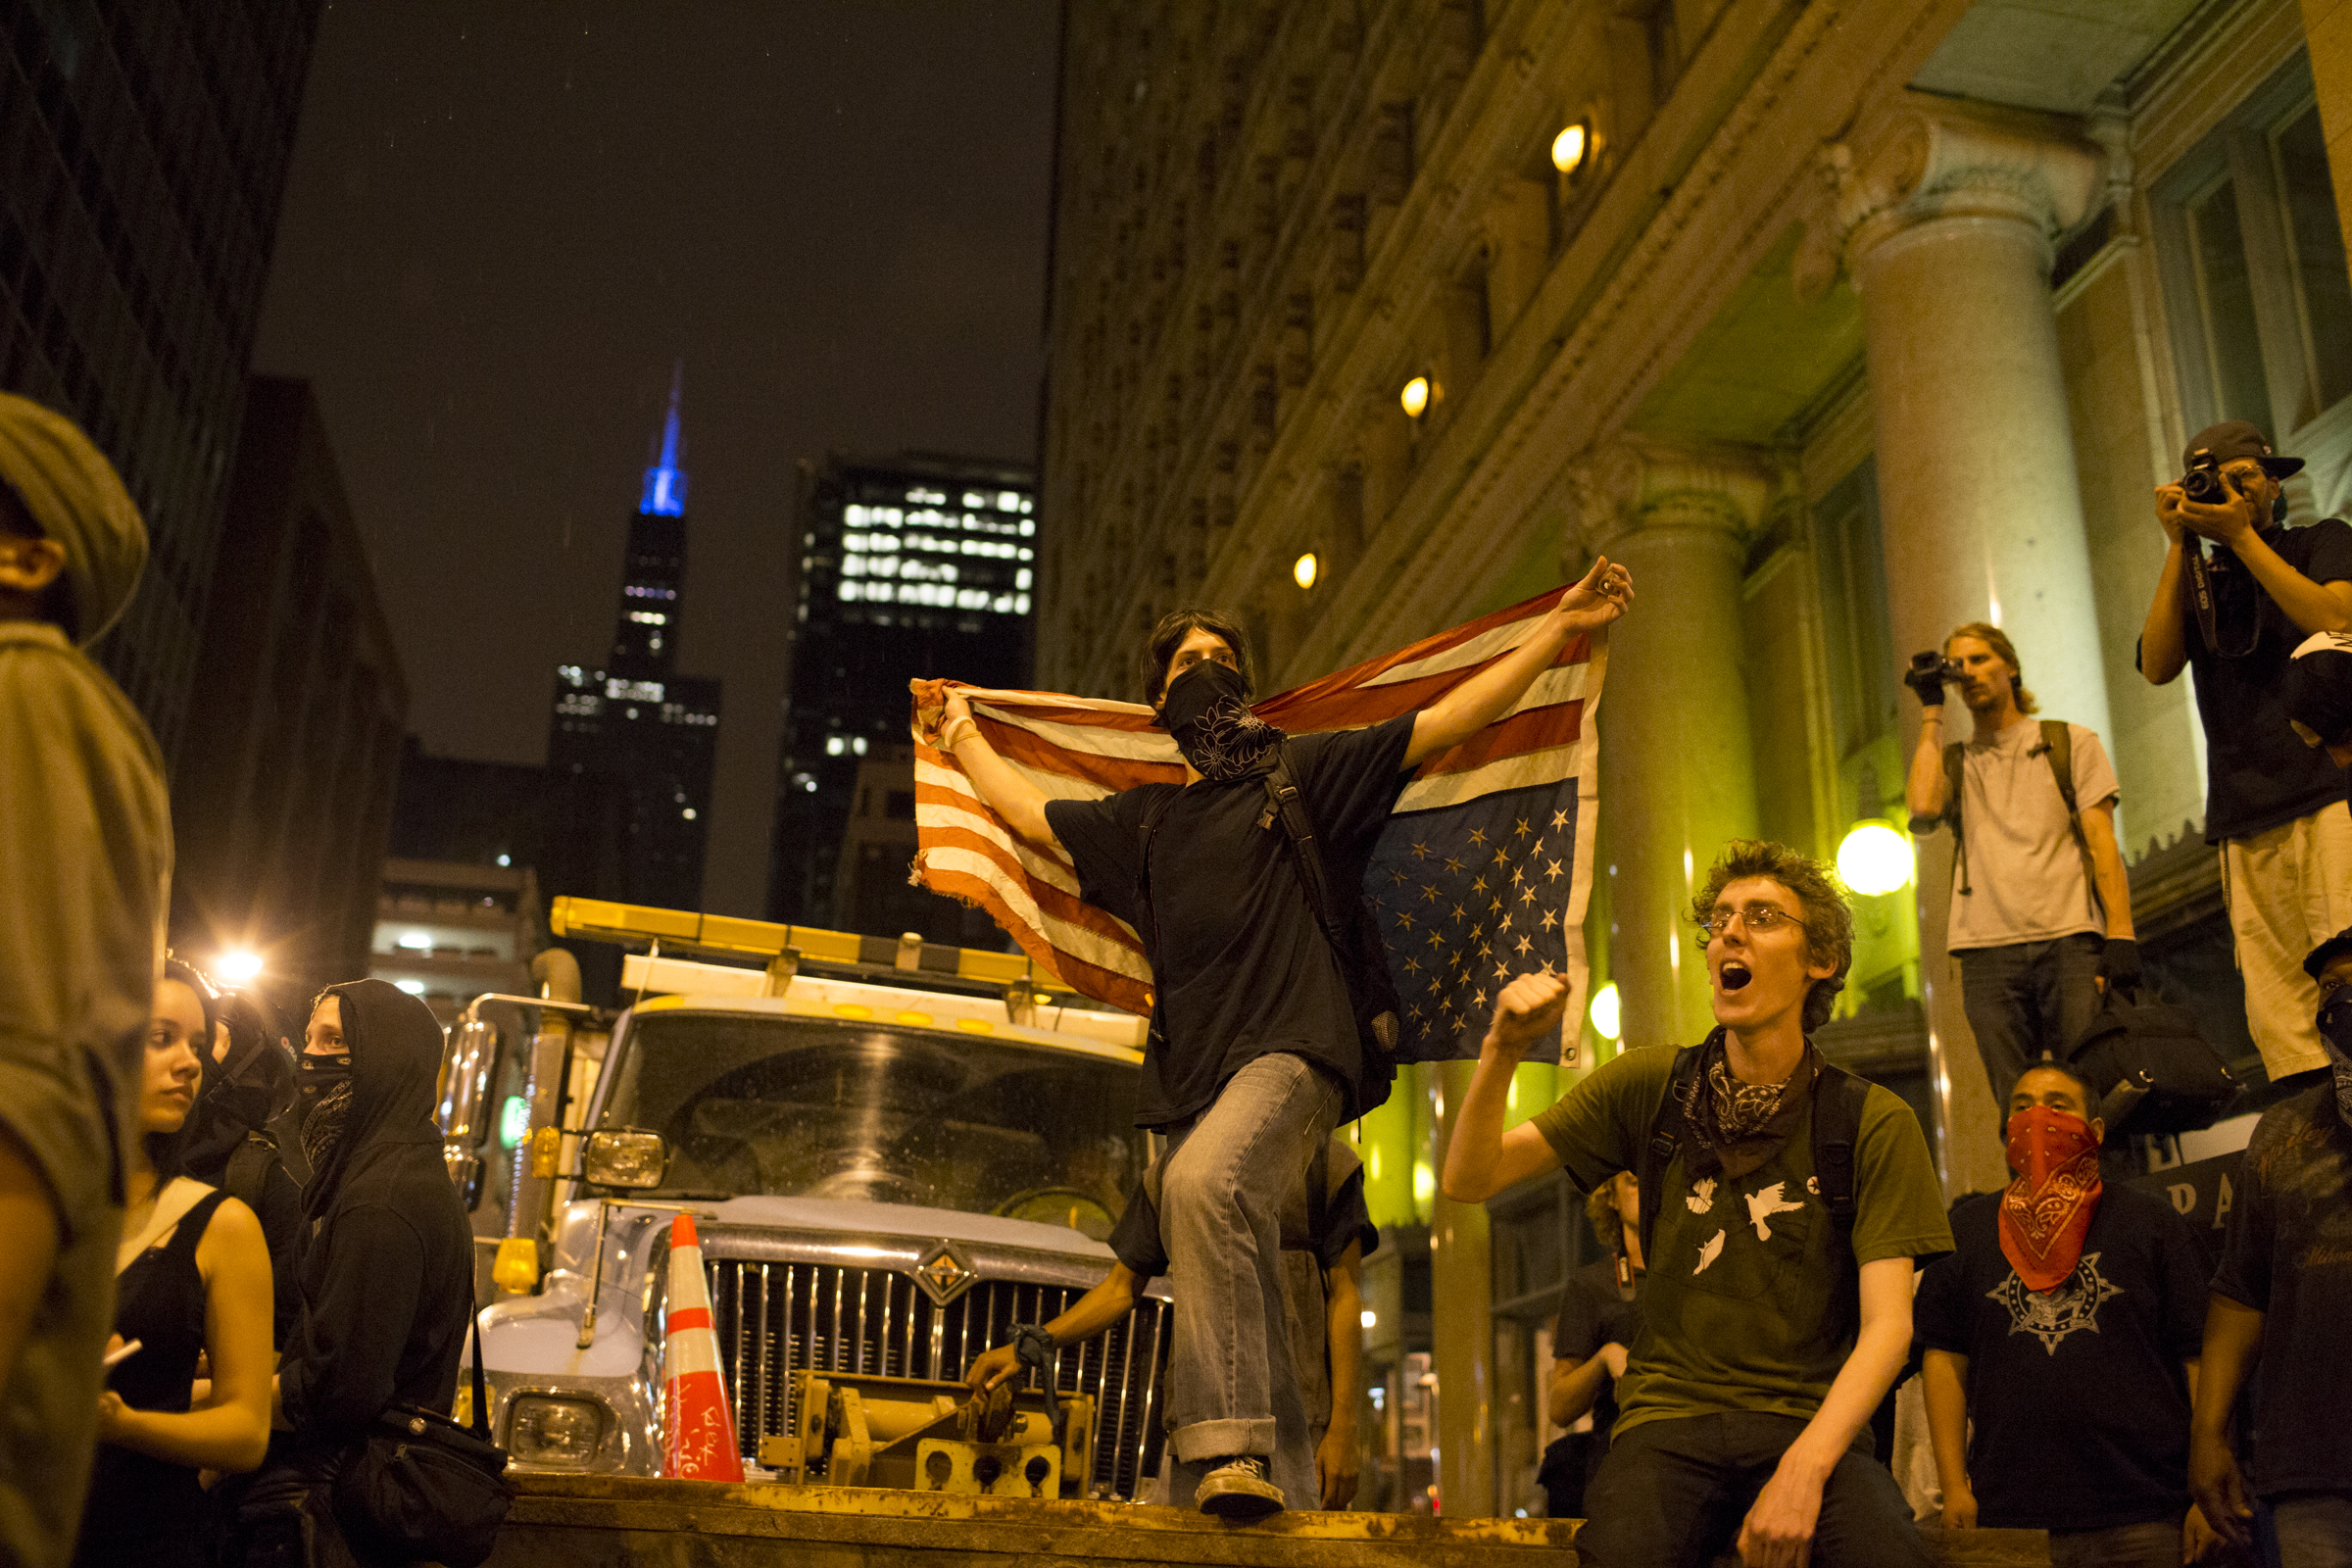 chicago, nato, protest, g8, 2012-030.jpg